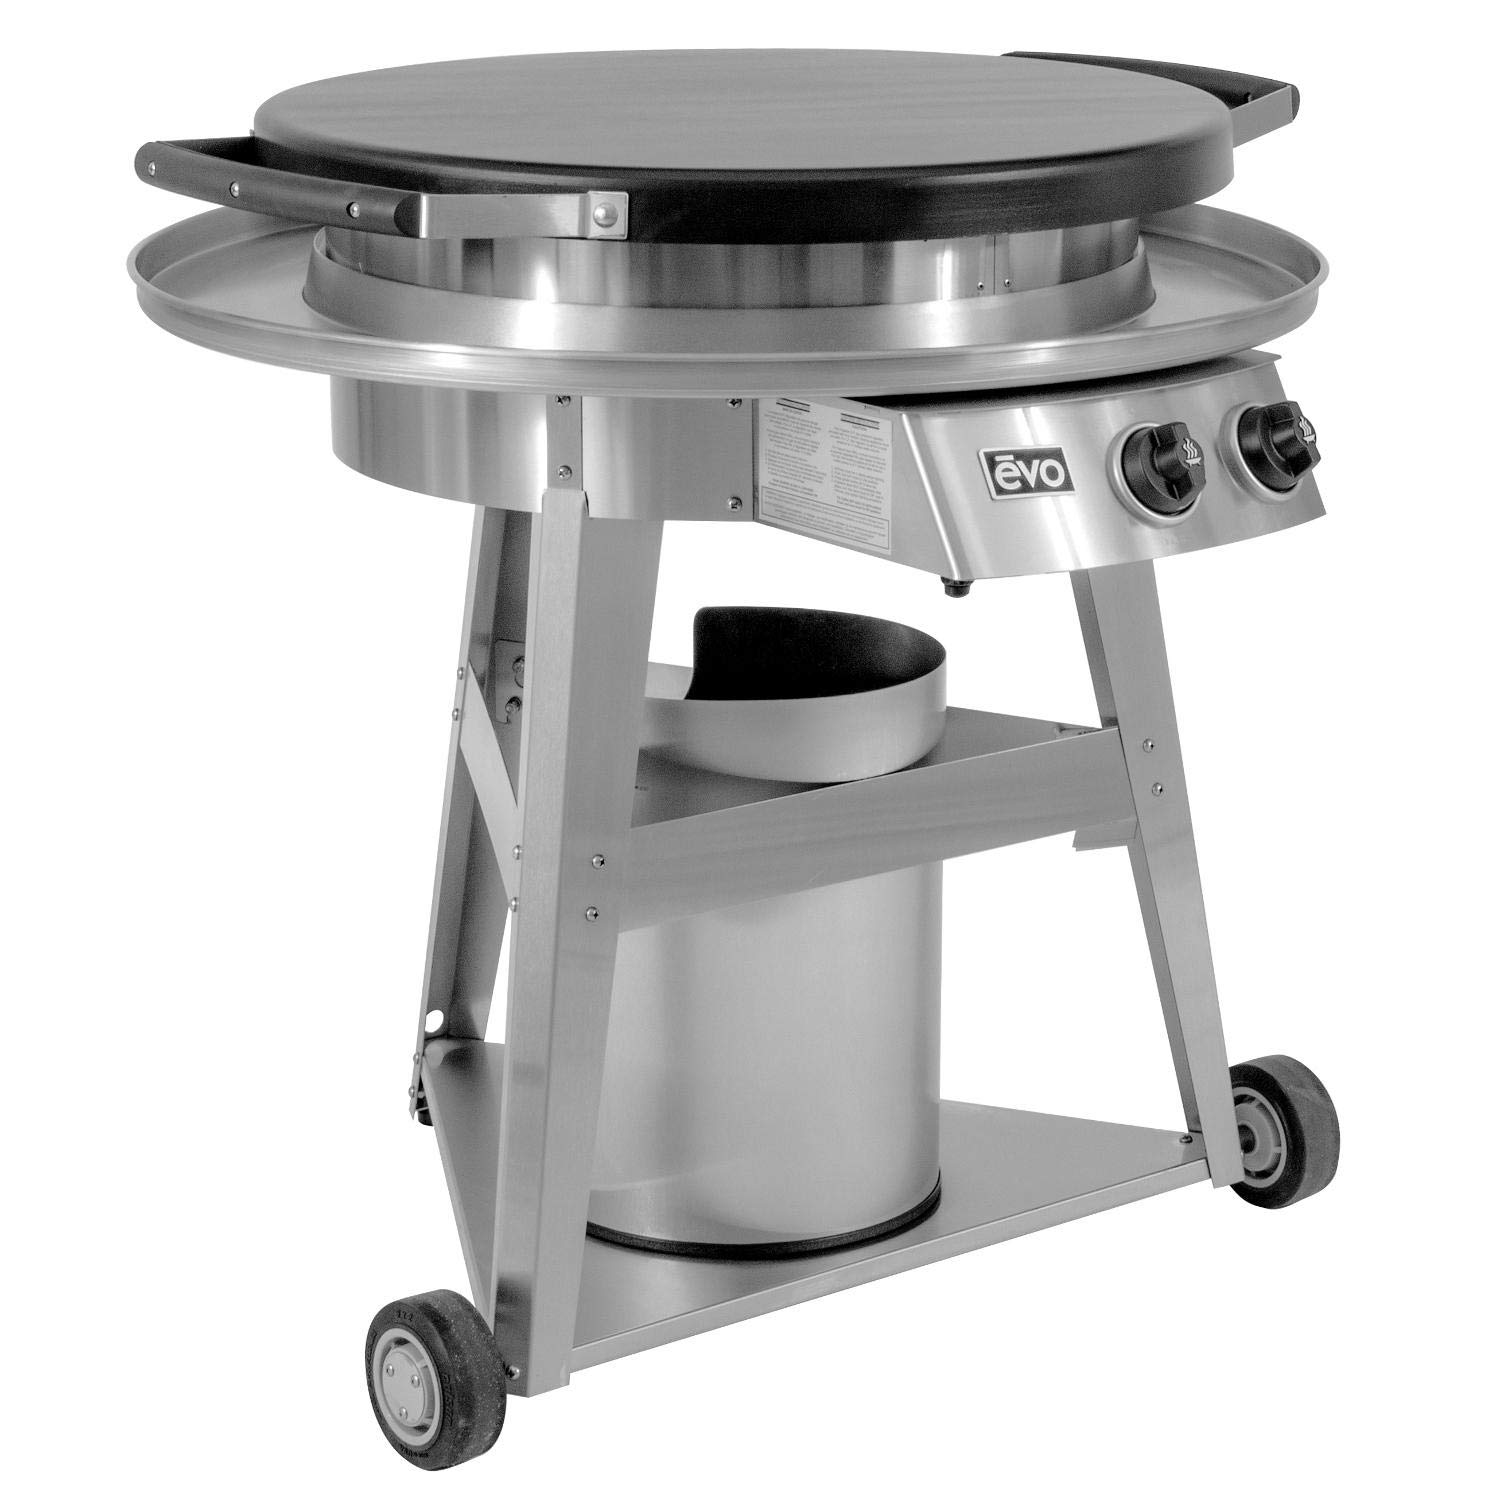 EVO Professional Series Gas Grill on Cart (10-0002-LP), Seasoned Steel Cooktop, Propane